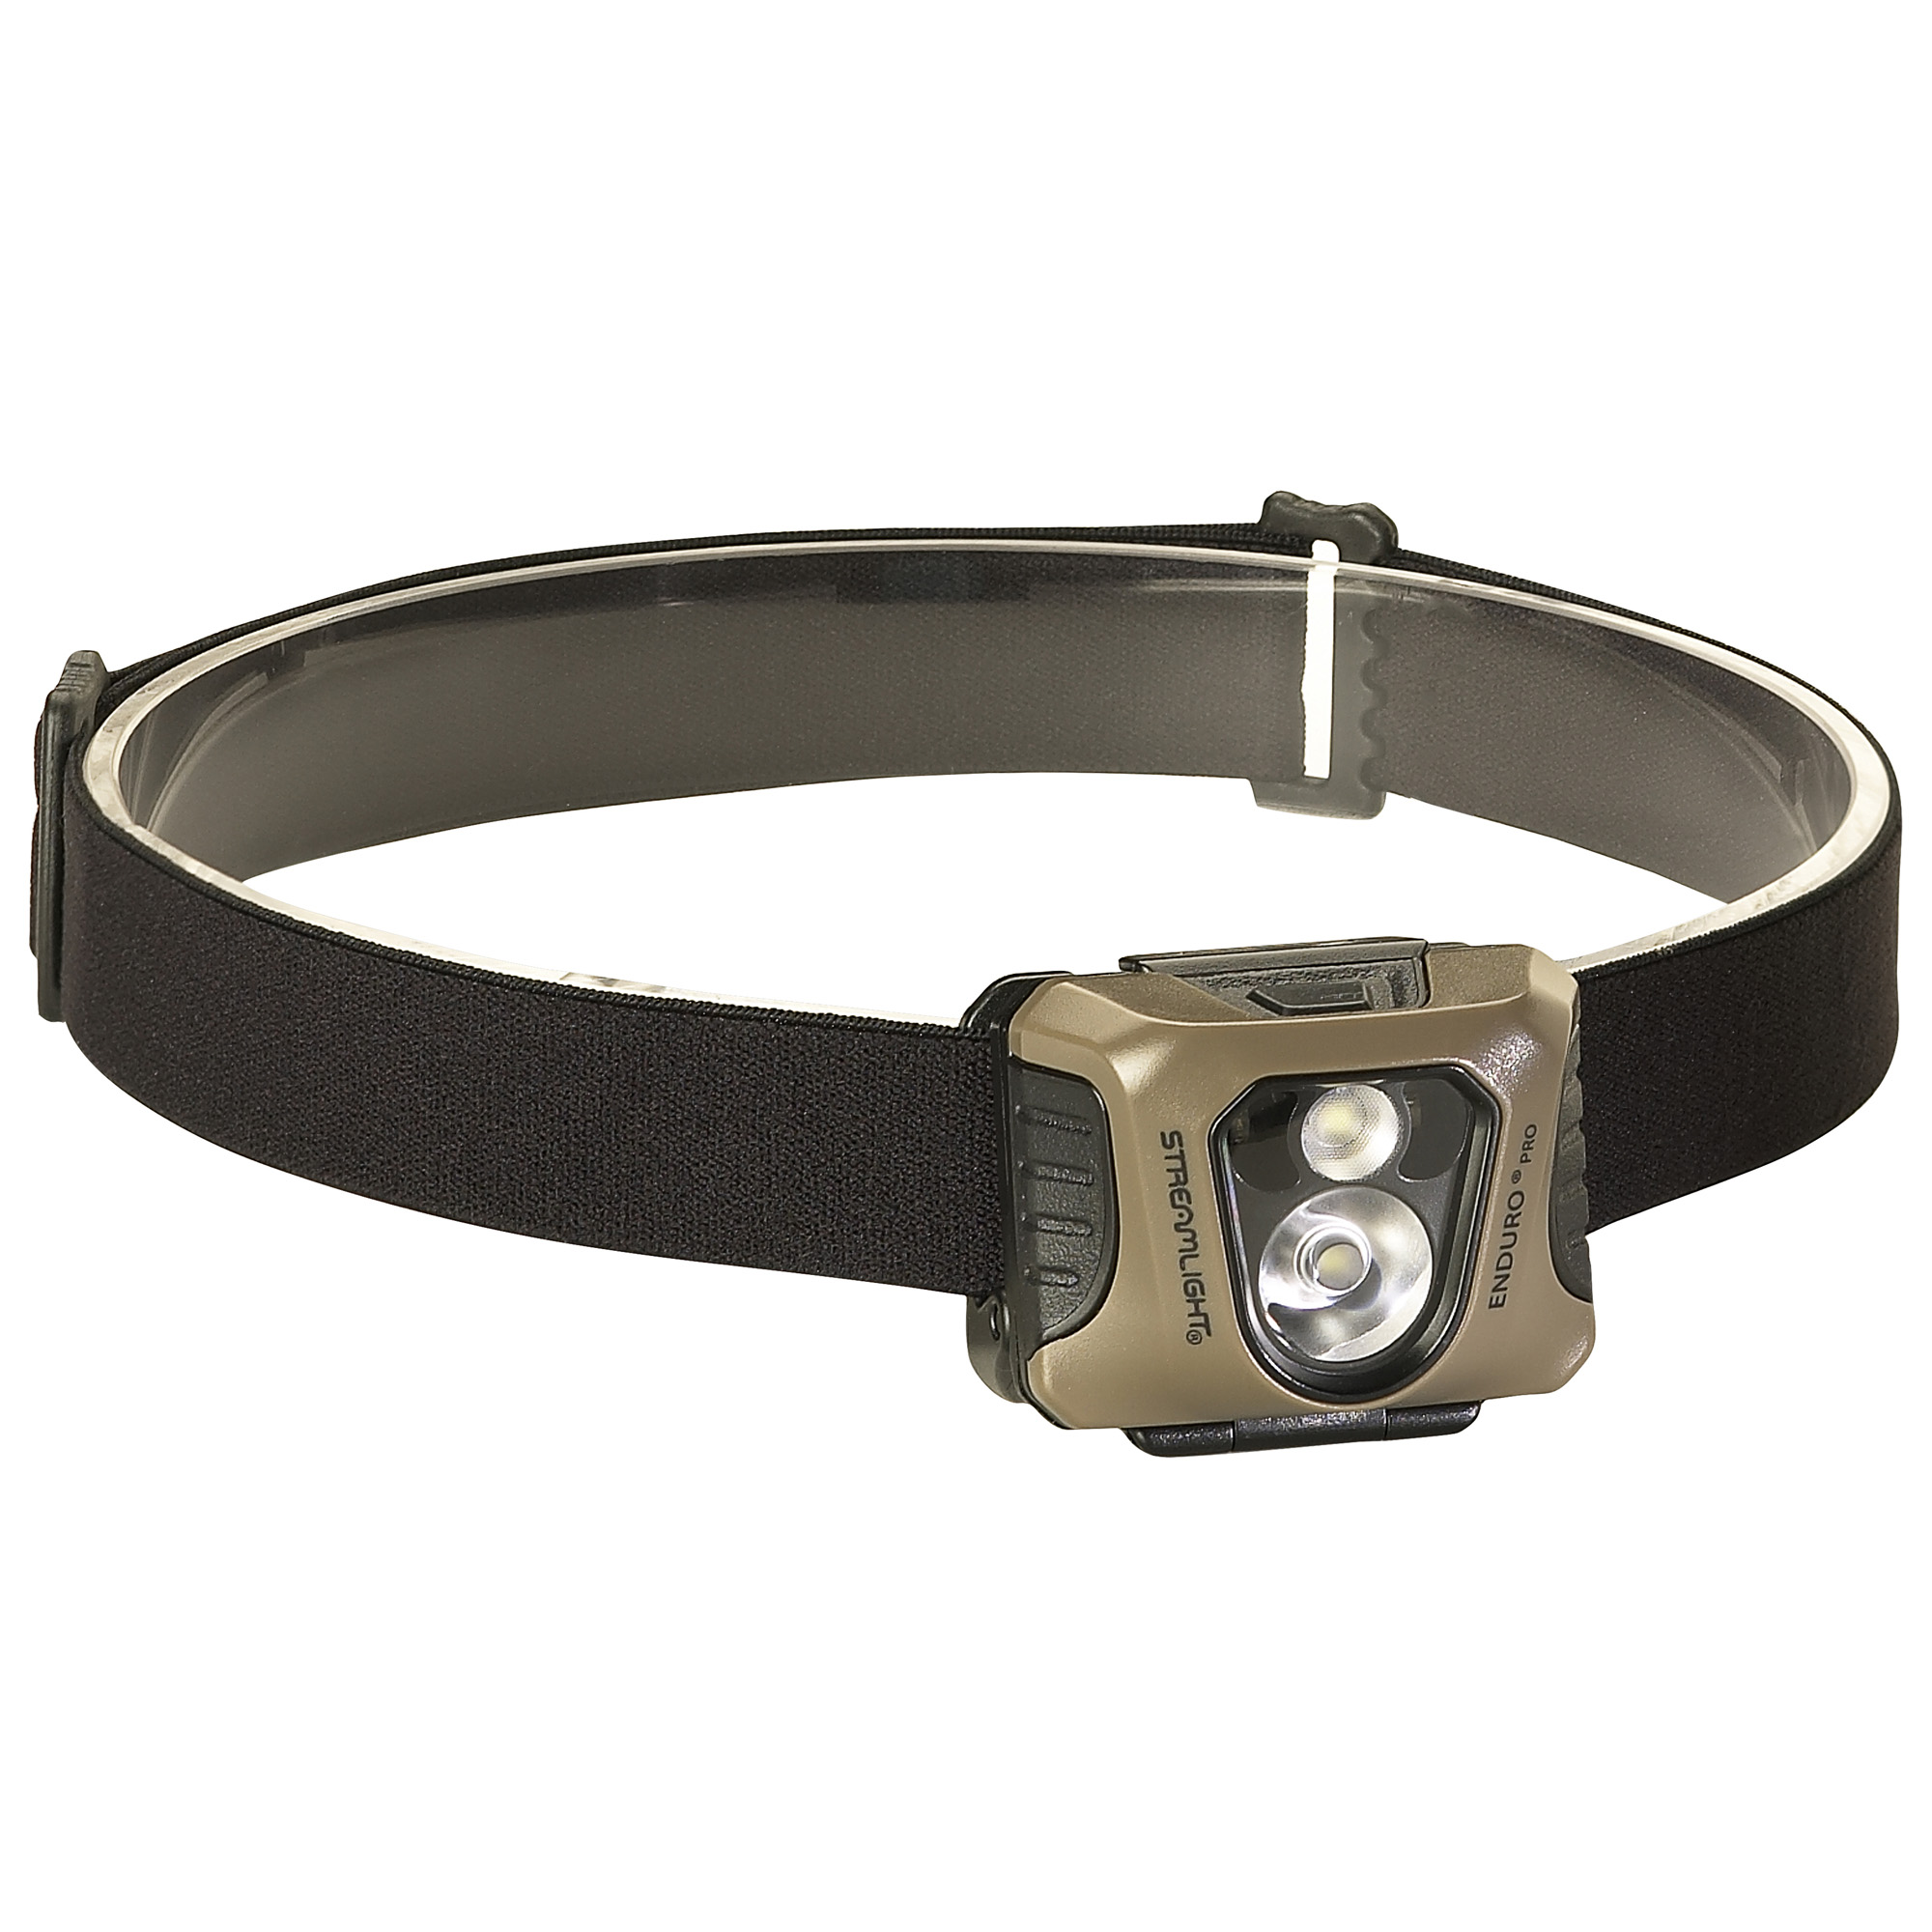 "A low-profile multi-function headlamp with the performance you've come to expect from Streamlight headlamps. Three lighting modes to cover a variety of tasks: spot beam for a focused beam"" flood for soft area illumination that won't tire your eyes and red or green LEDs to preserve night vision."